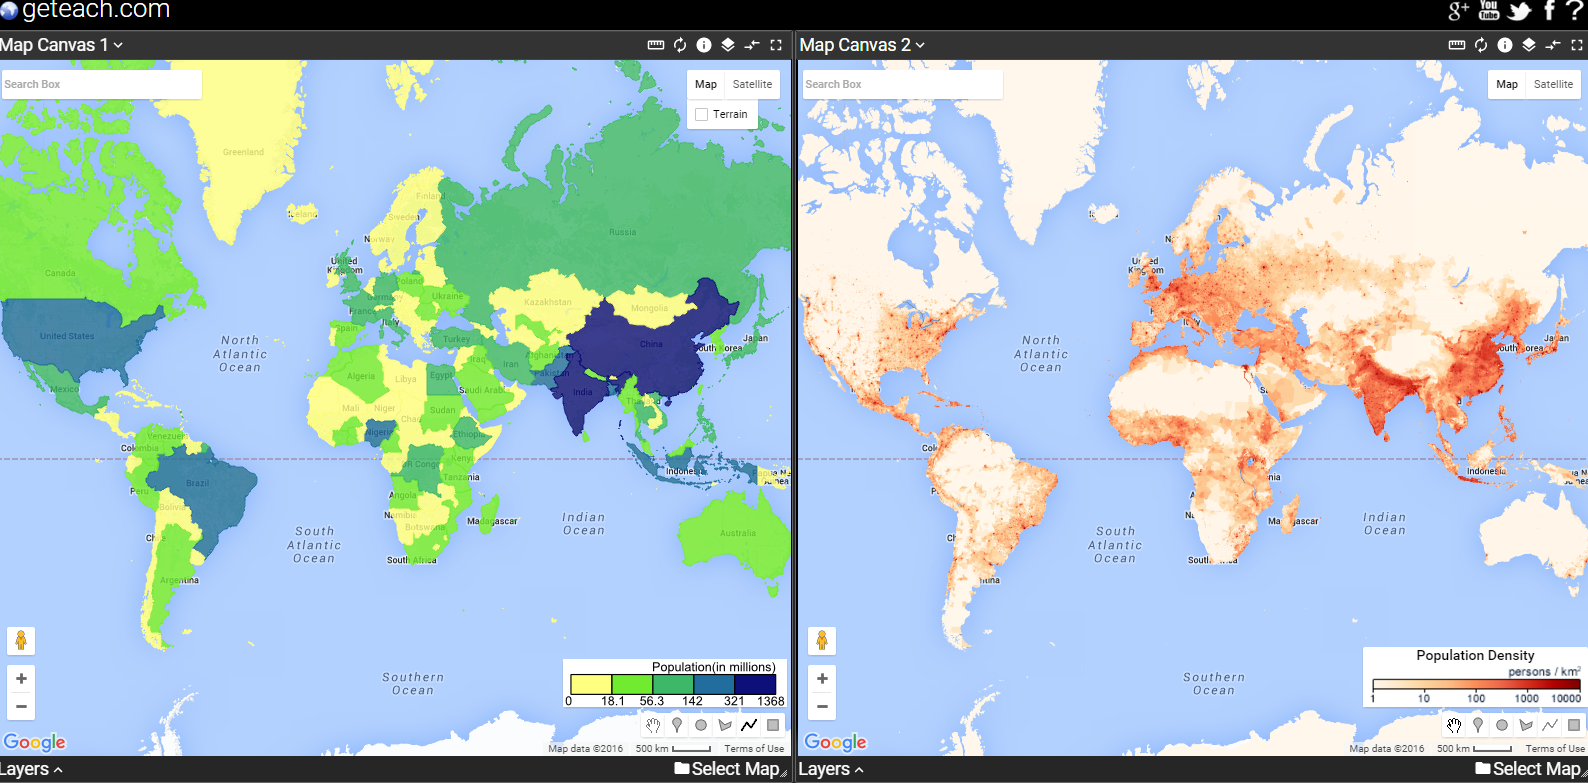 Free Technology for Teachers: Students Can Compare Maps Side-by-Side